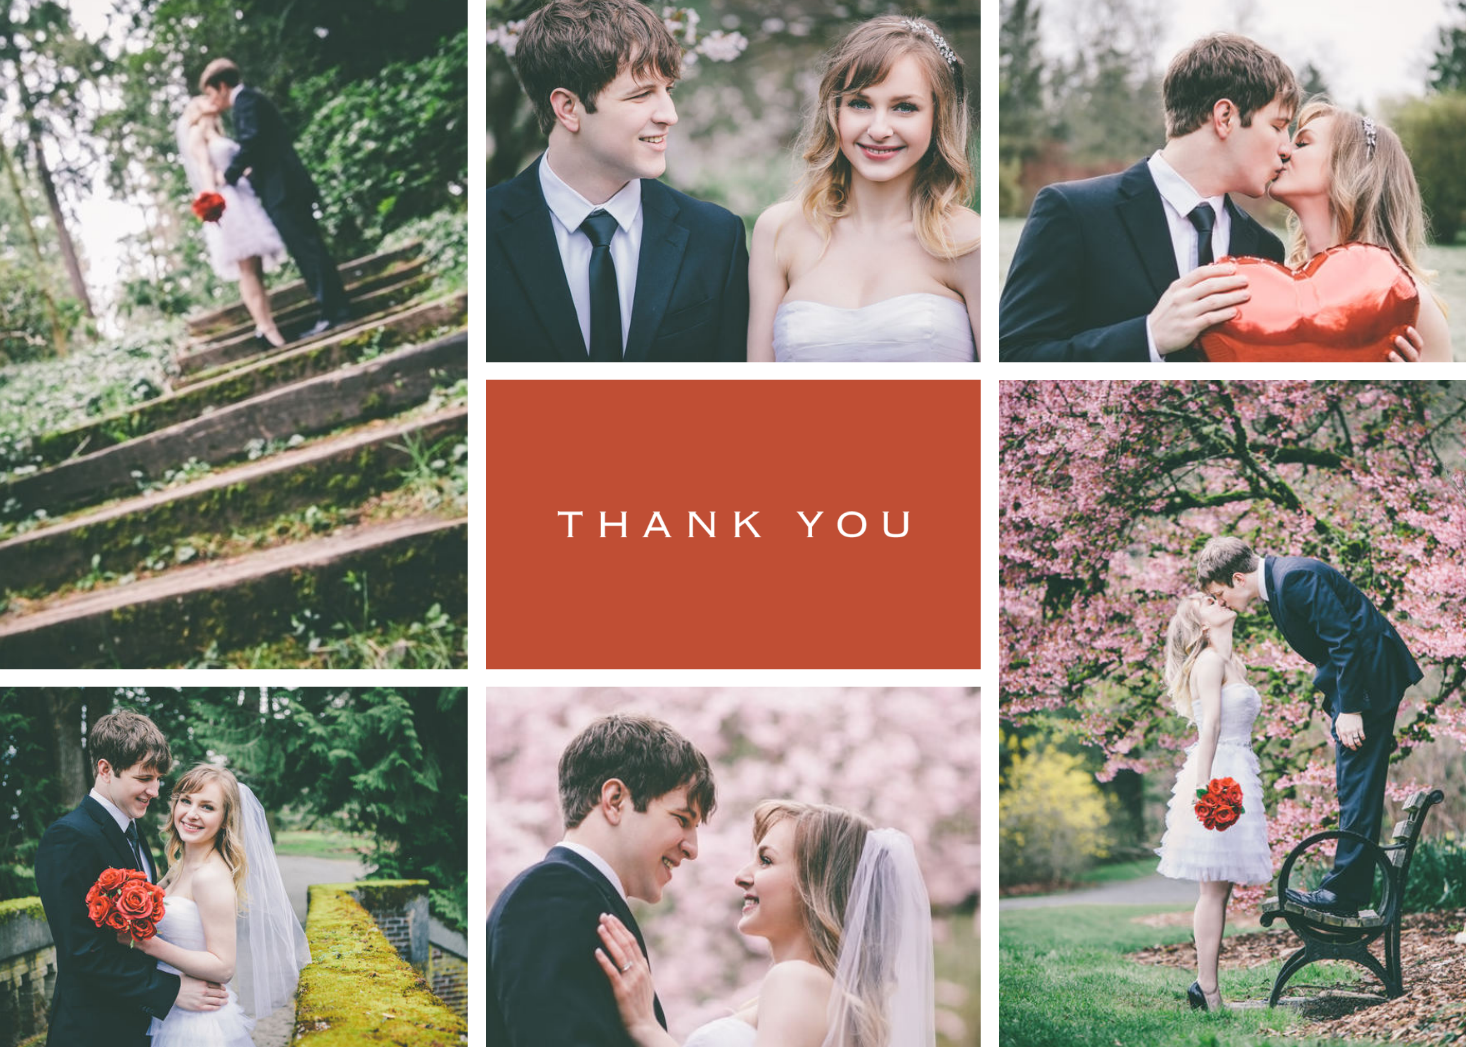 Centered Thank You | Wedding, Engagement inspiration and Invitation ...